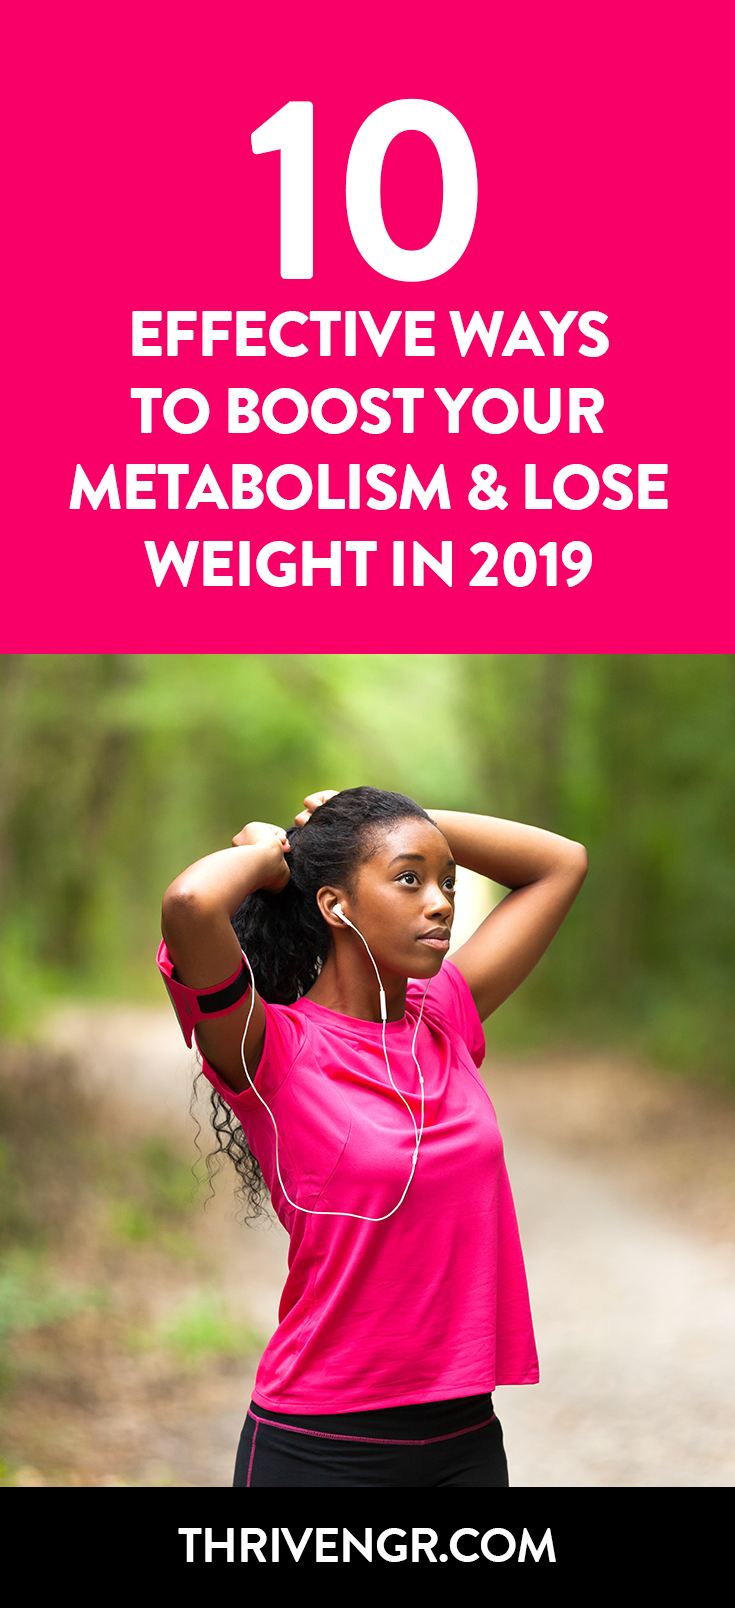 Boost Your Metabolism and Lose Weight in 2019